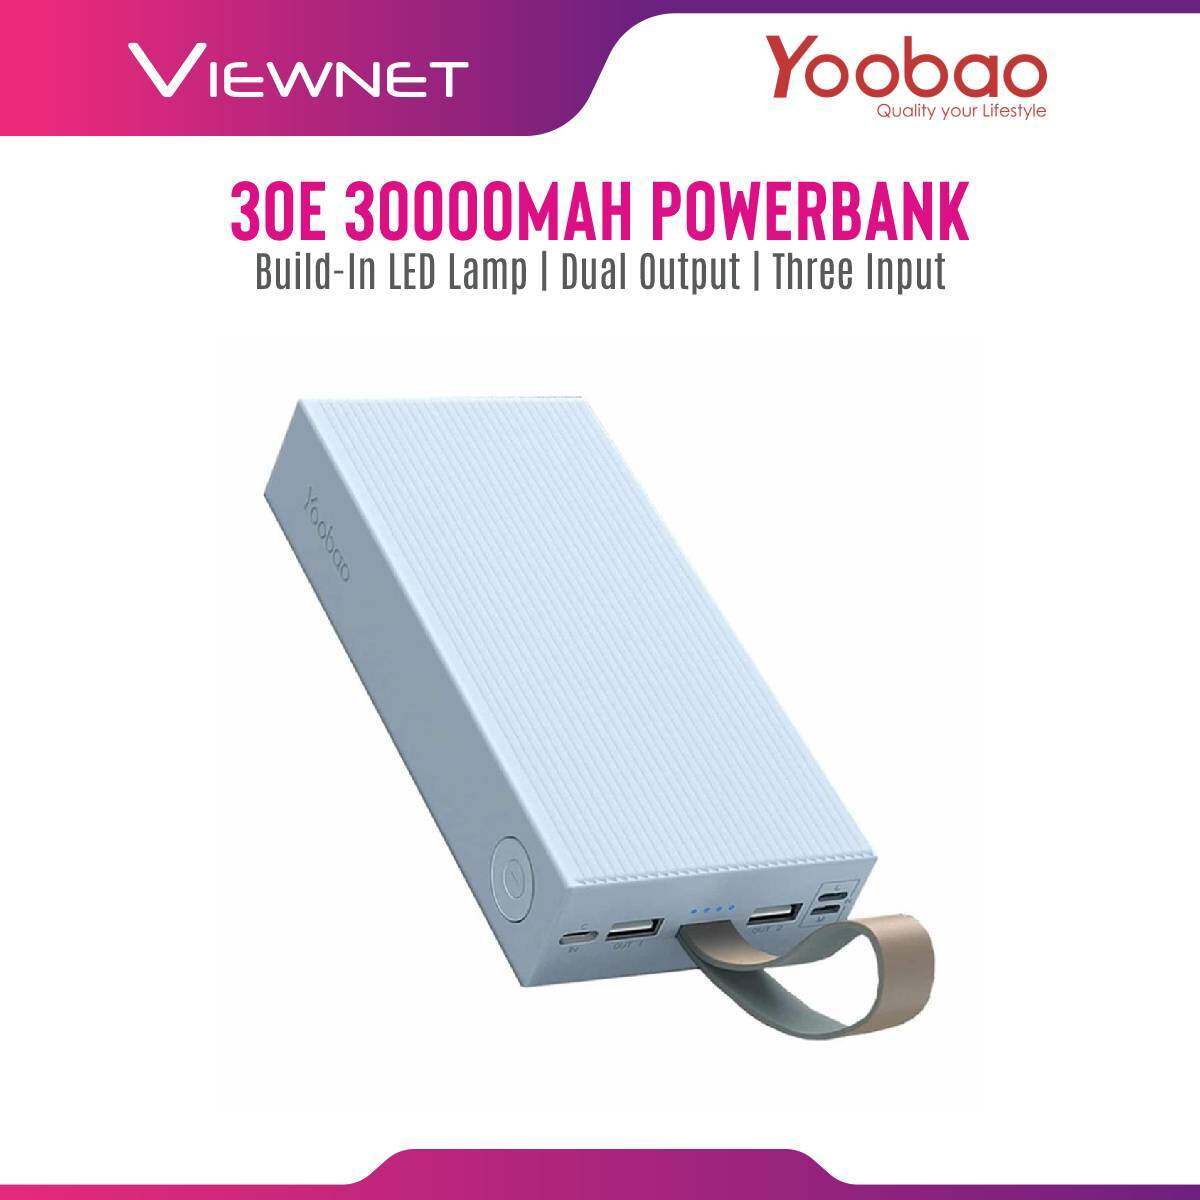 Yoobao 30E 30000mAh Fast Charge 2.1A Portable Power Bank With Build-In LED Lamp Dual Output Three Input